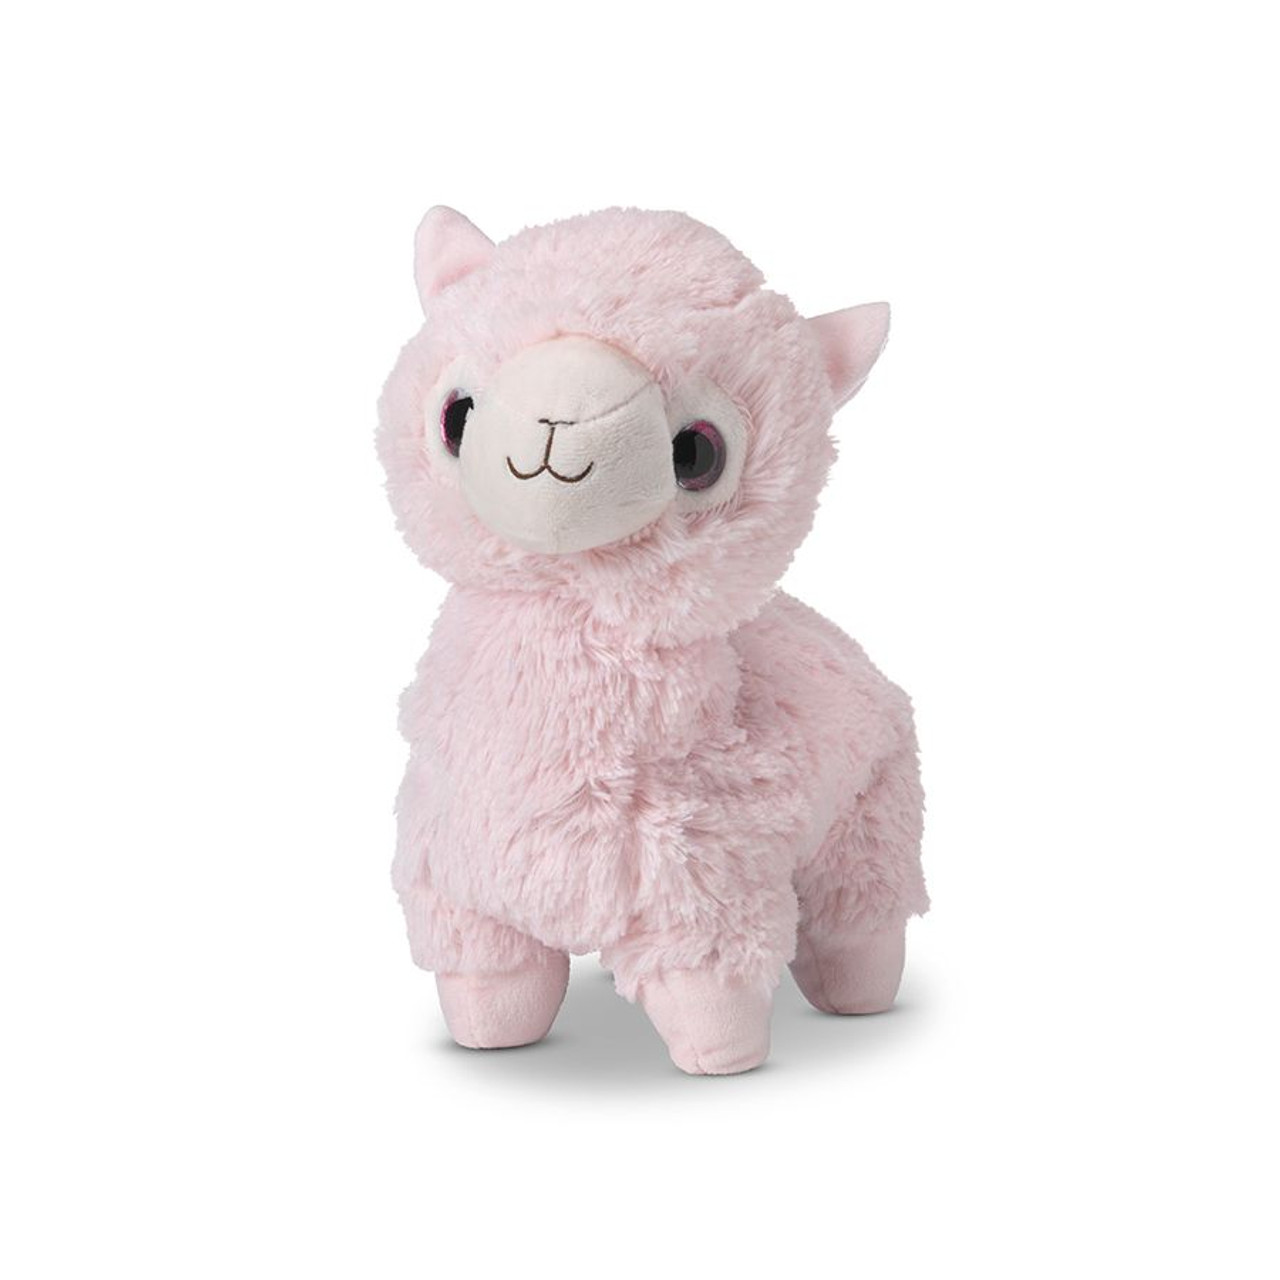 "All age groups can have hours of fun using their Warmies® Cozy Plush Pink Llama, knowing that they can be warm all night long.   The 13"" Pink Llama is fully microwavable yet entirely safe to hold tight after taking a bath, putting on PJs, and heading up the stairs to bed."